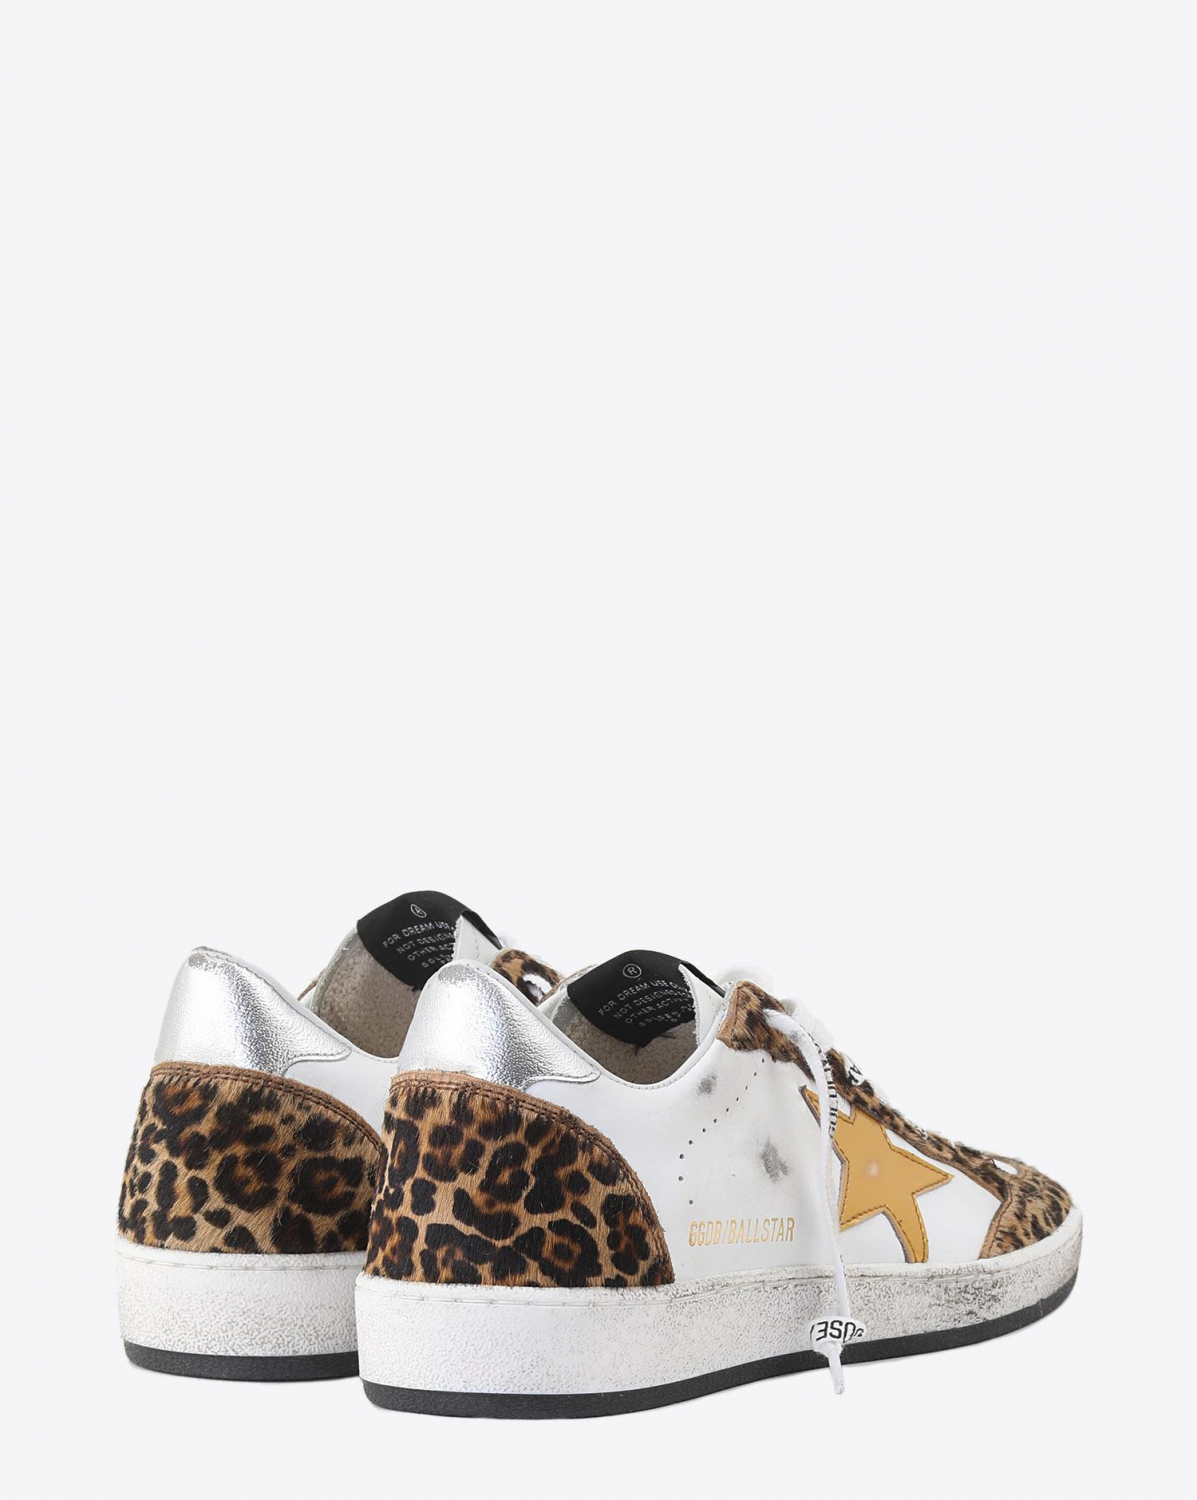 Golden Goose Woman Collection Sneakers Ball Star - Horsy Leopard - Gold Laminated Star - Logo Lace